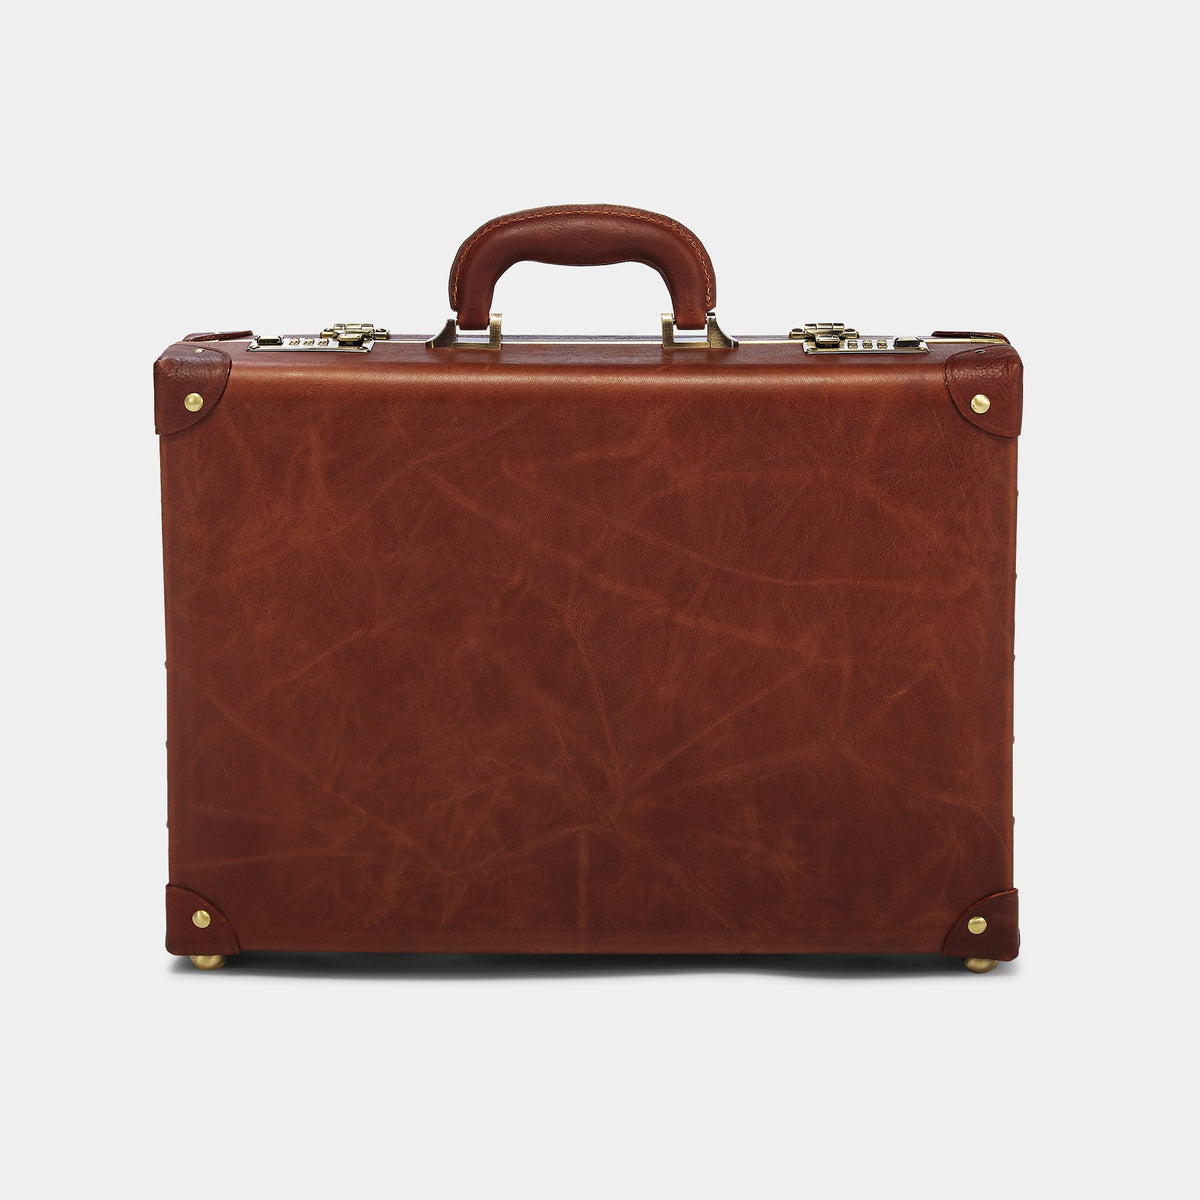 The Pioneer Executive Briefcase - Vintage-Style Leather Briefcase - Exterior